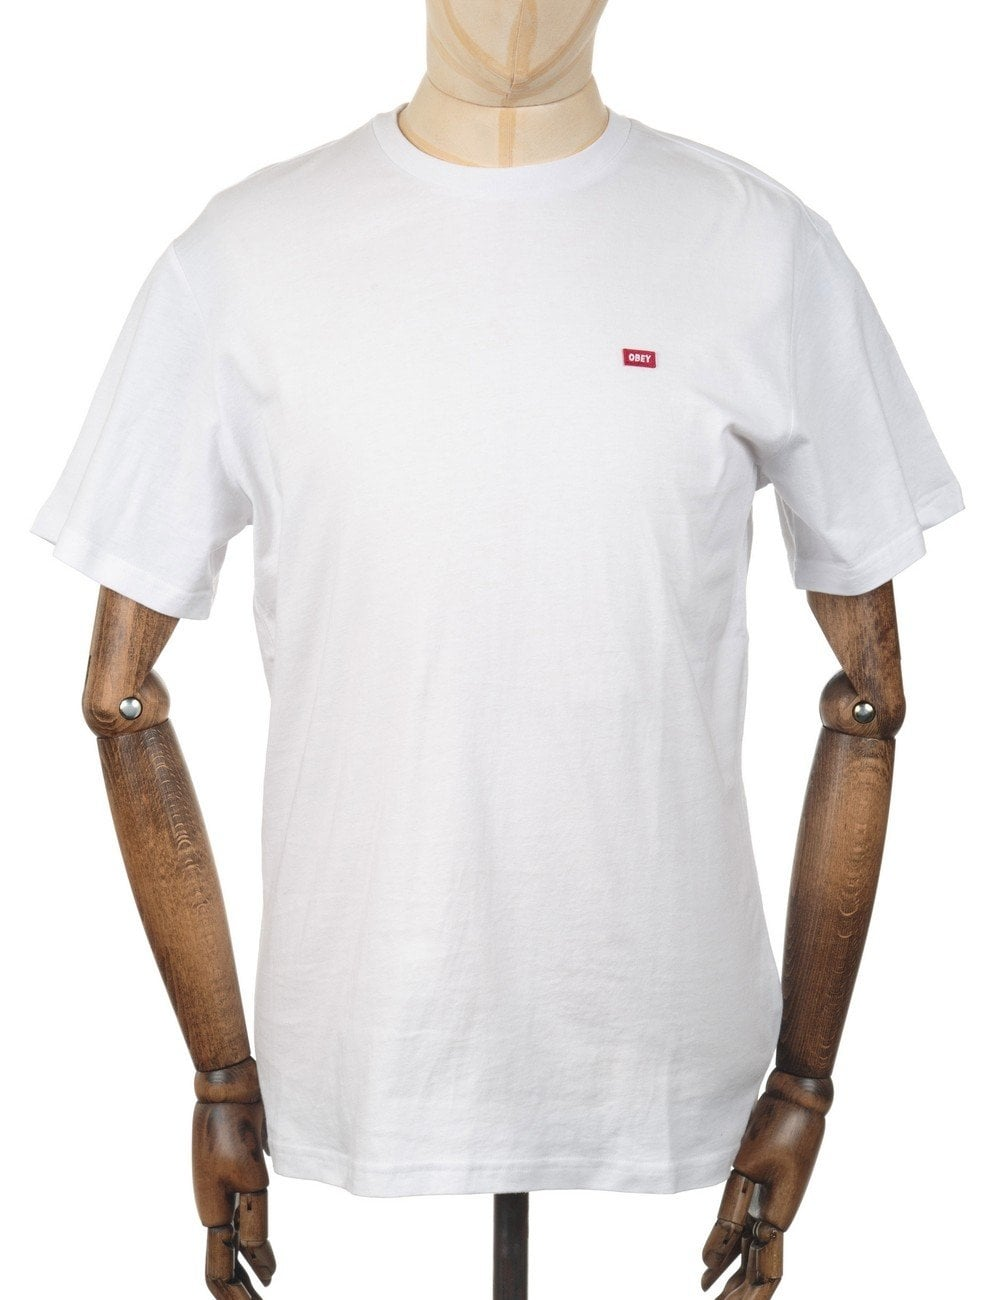 a54cb6522 obey clothing high standard t shirt white obey clothing from fat buddha  store uk